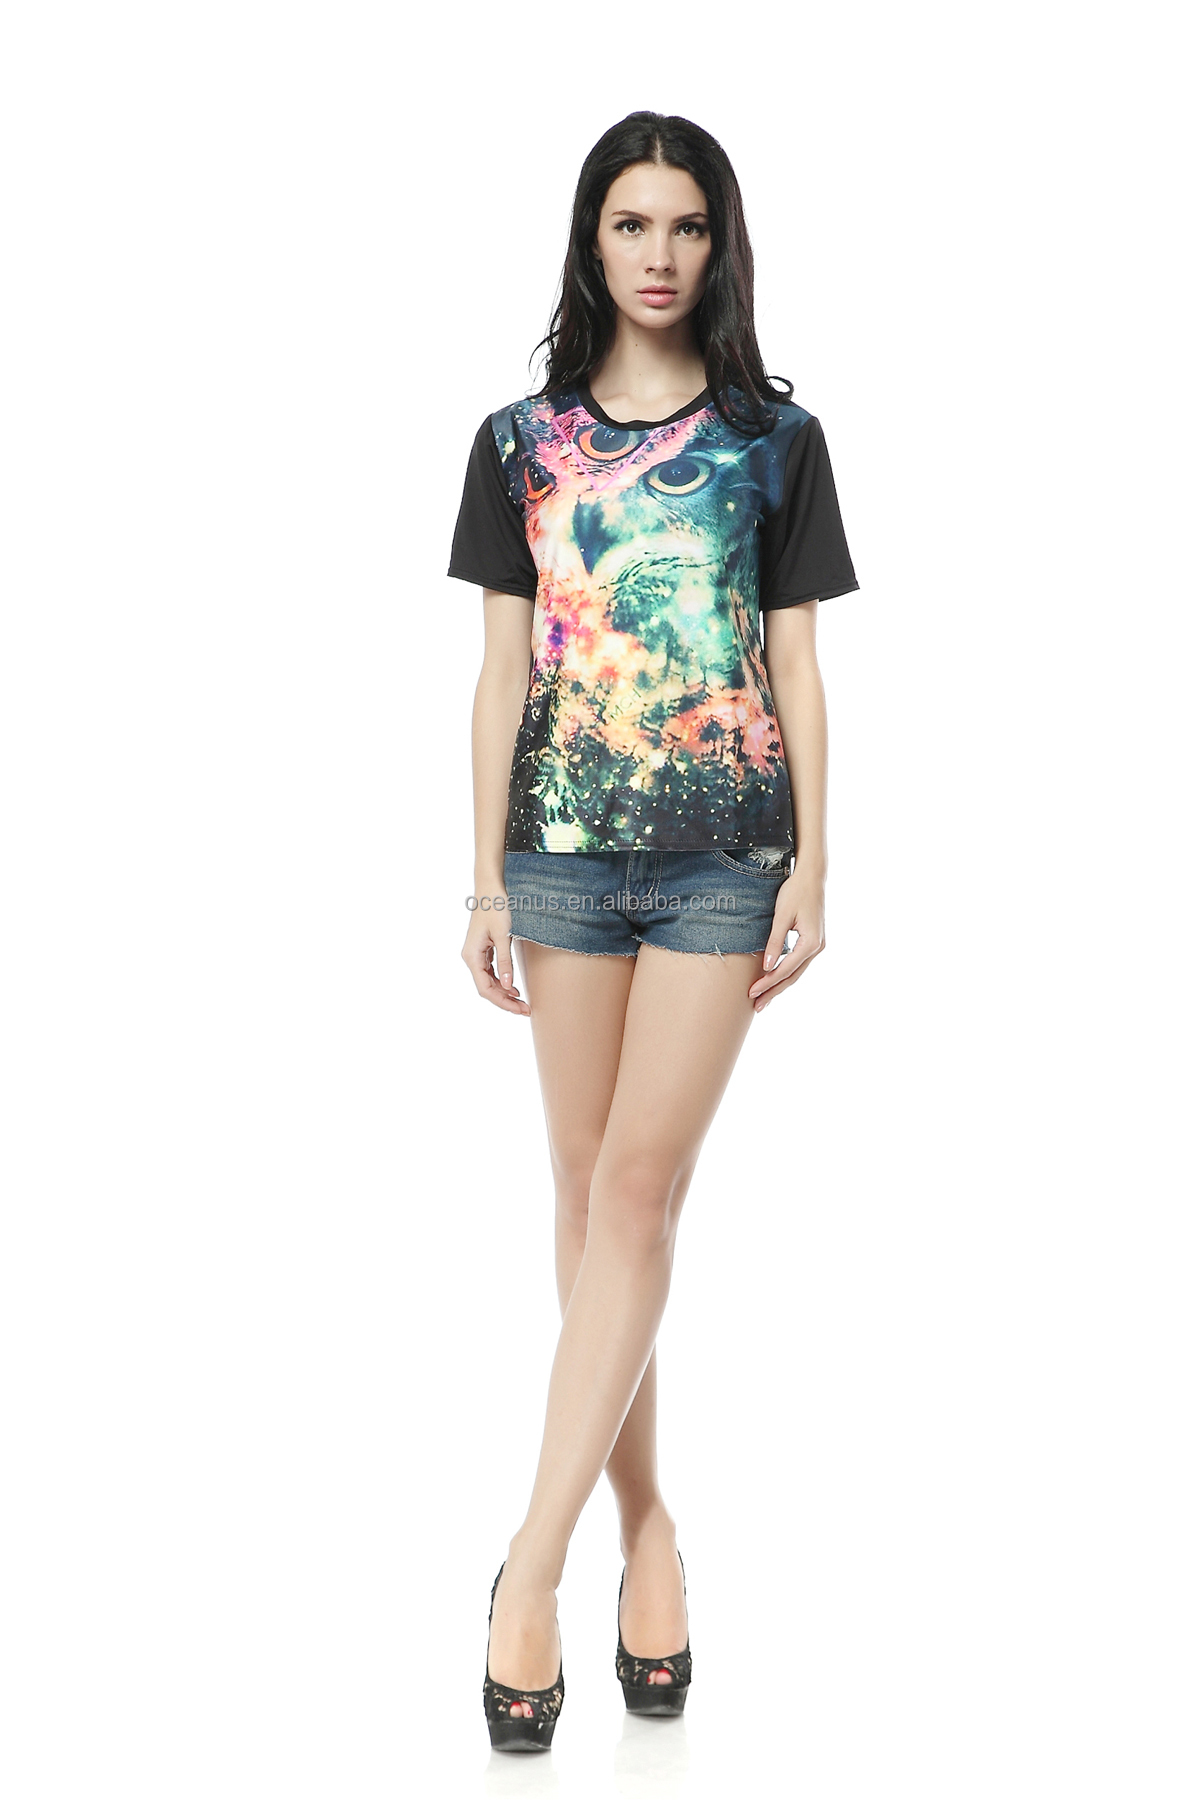 China Manufacturer all over print t shirts